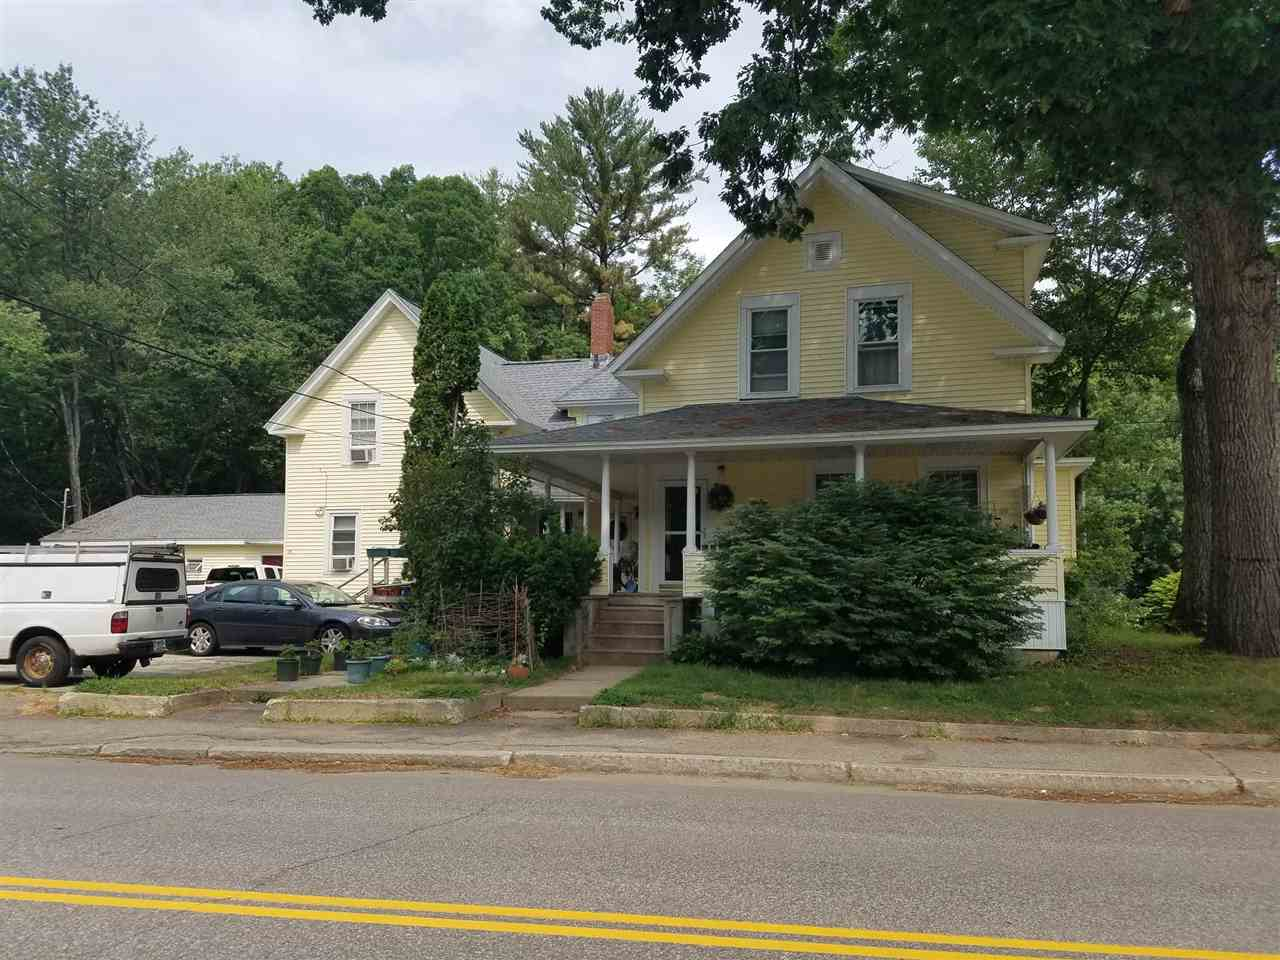 MLS 4661325: 7 Water St & 5 Red Gate Ln, Meredith NH